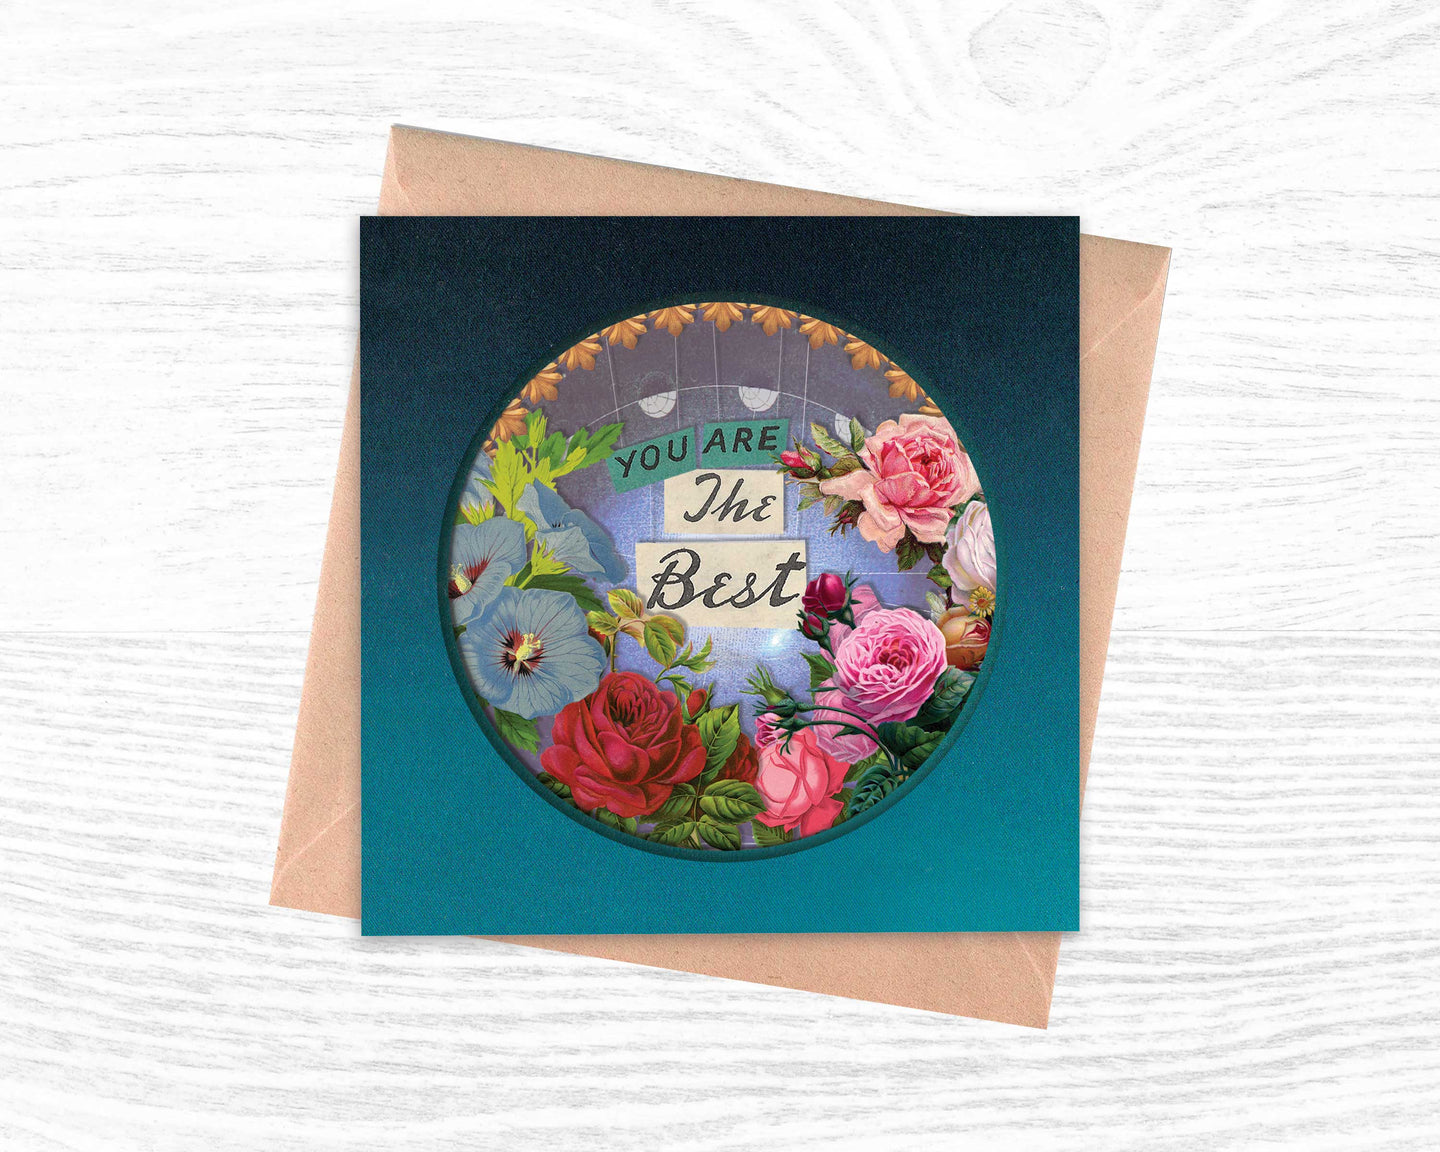 'You Are The Best' - Luxury Greeting Card